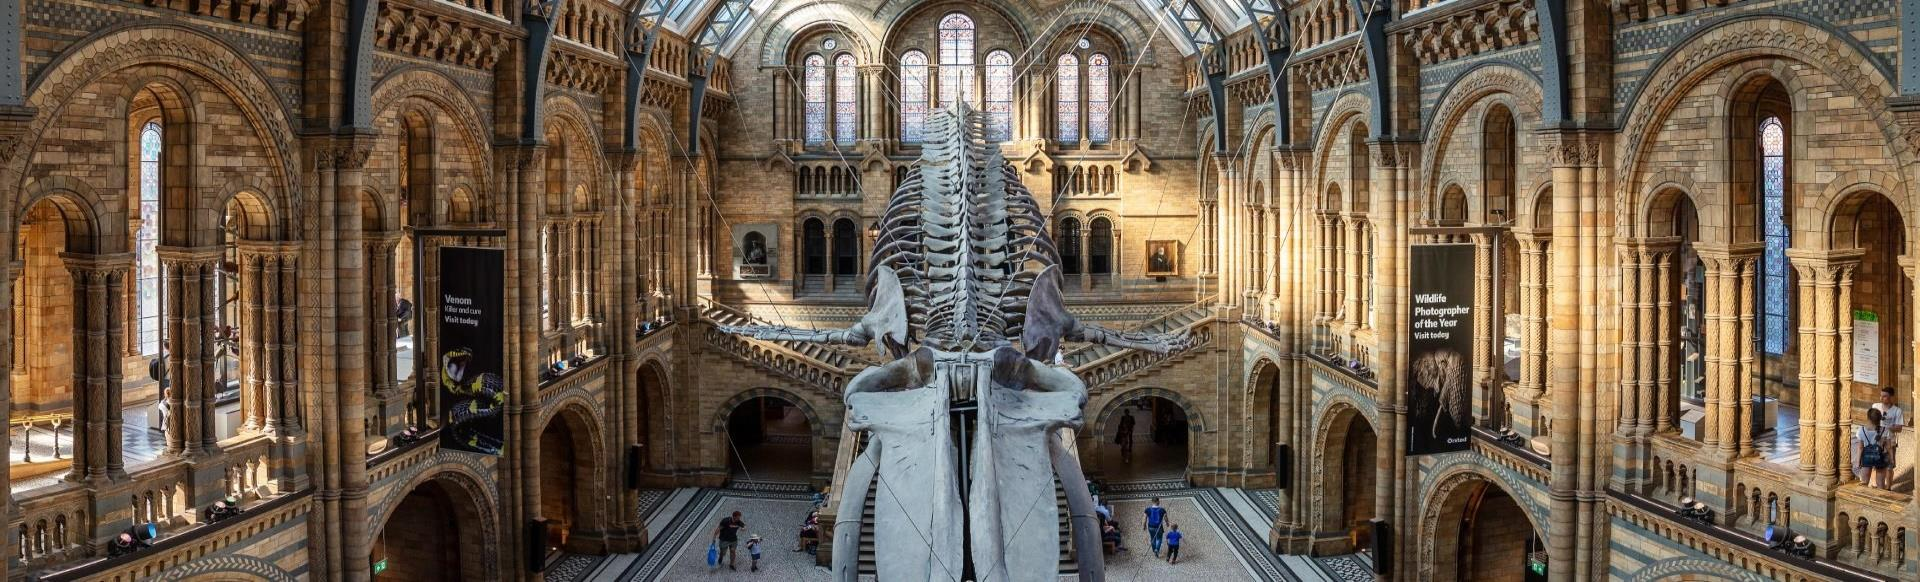 Hope the blue whale hanging in the grand hall of the Natural History Museum in London.